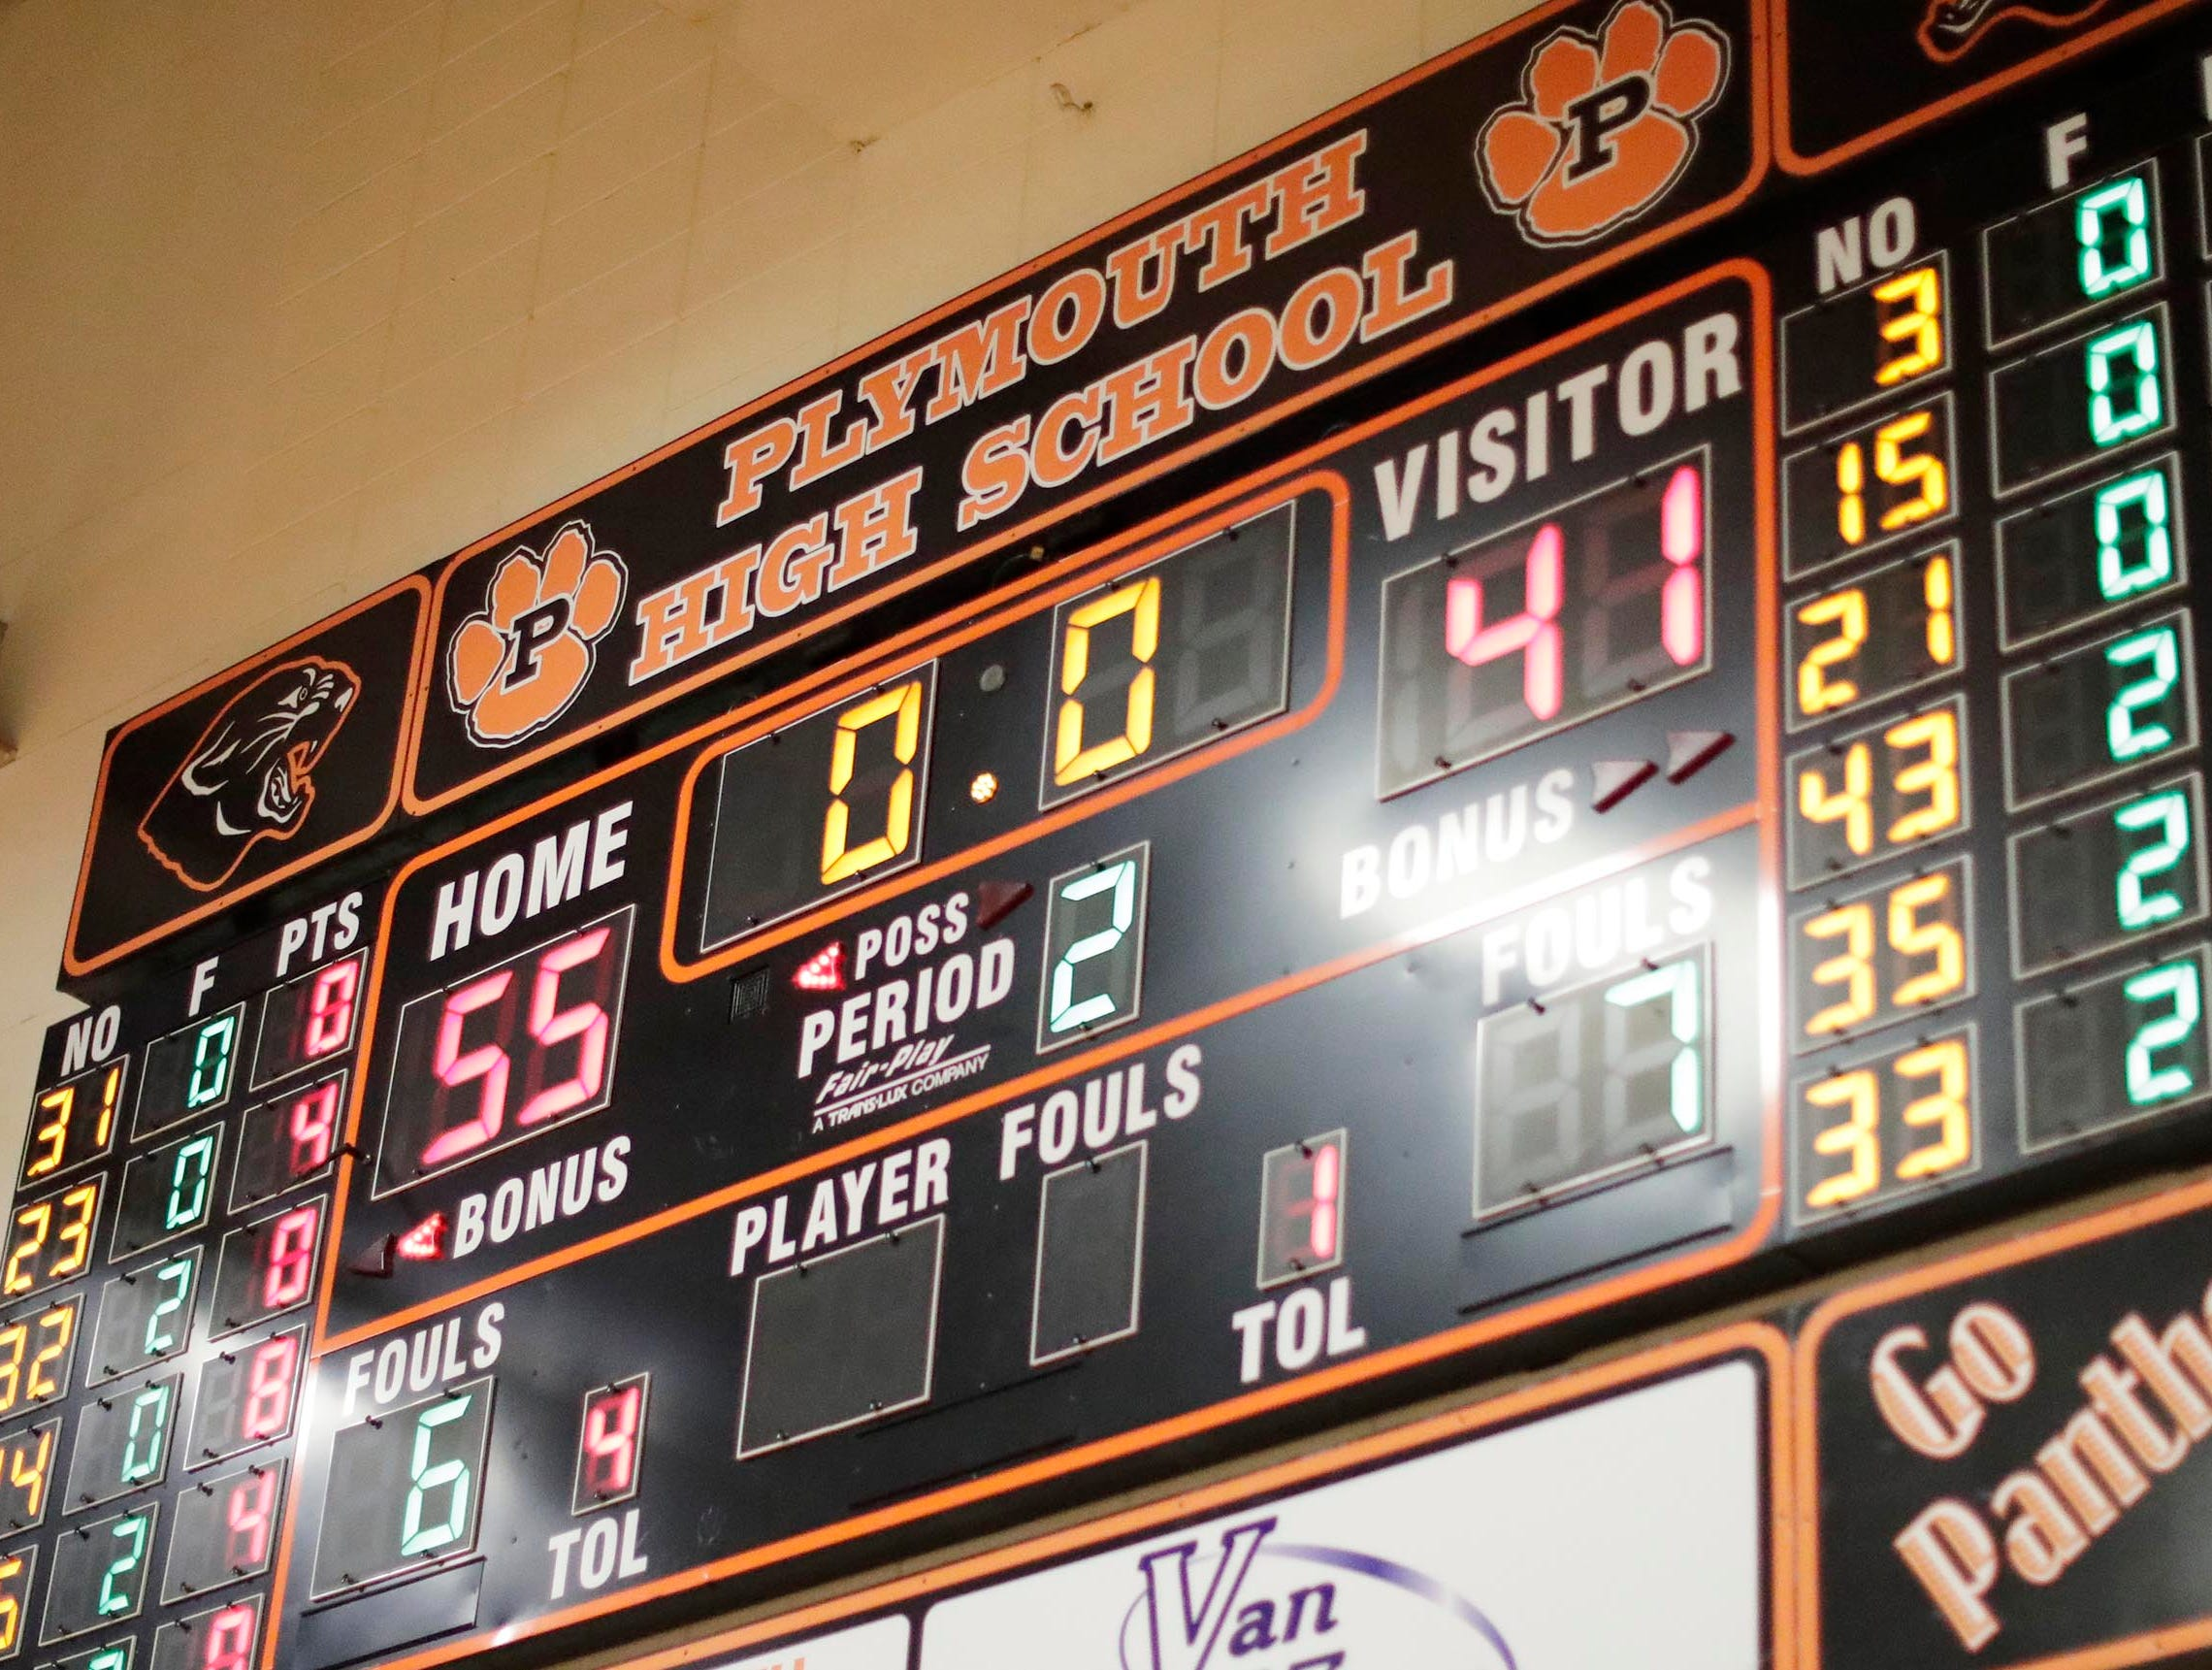 FINAL - Plymouth 55, Winneconne 41, Wednesday, February 21, 2019, in Plymouth, Wis.